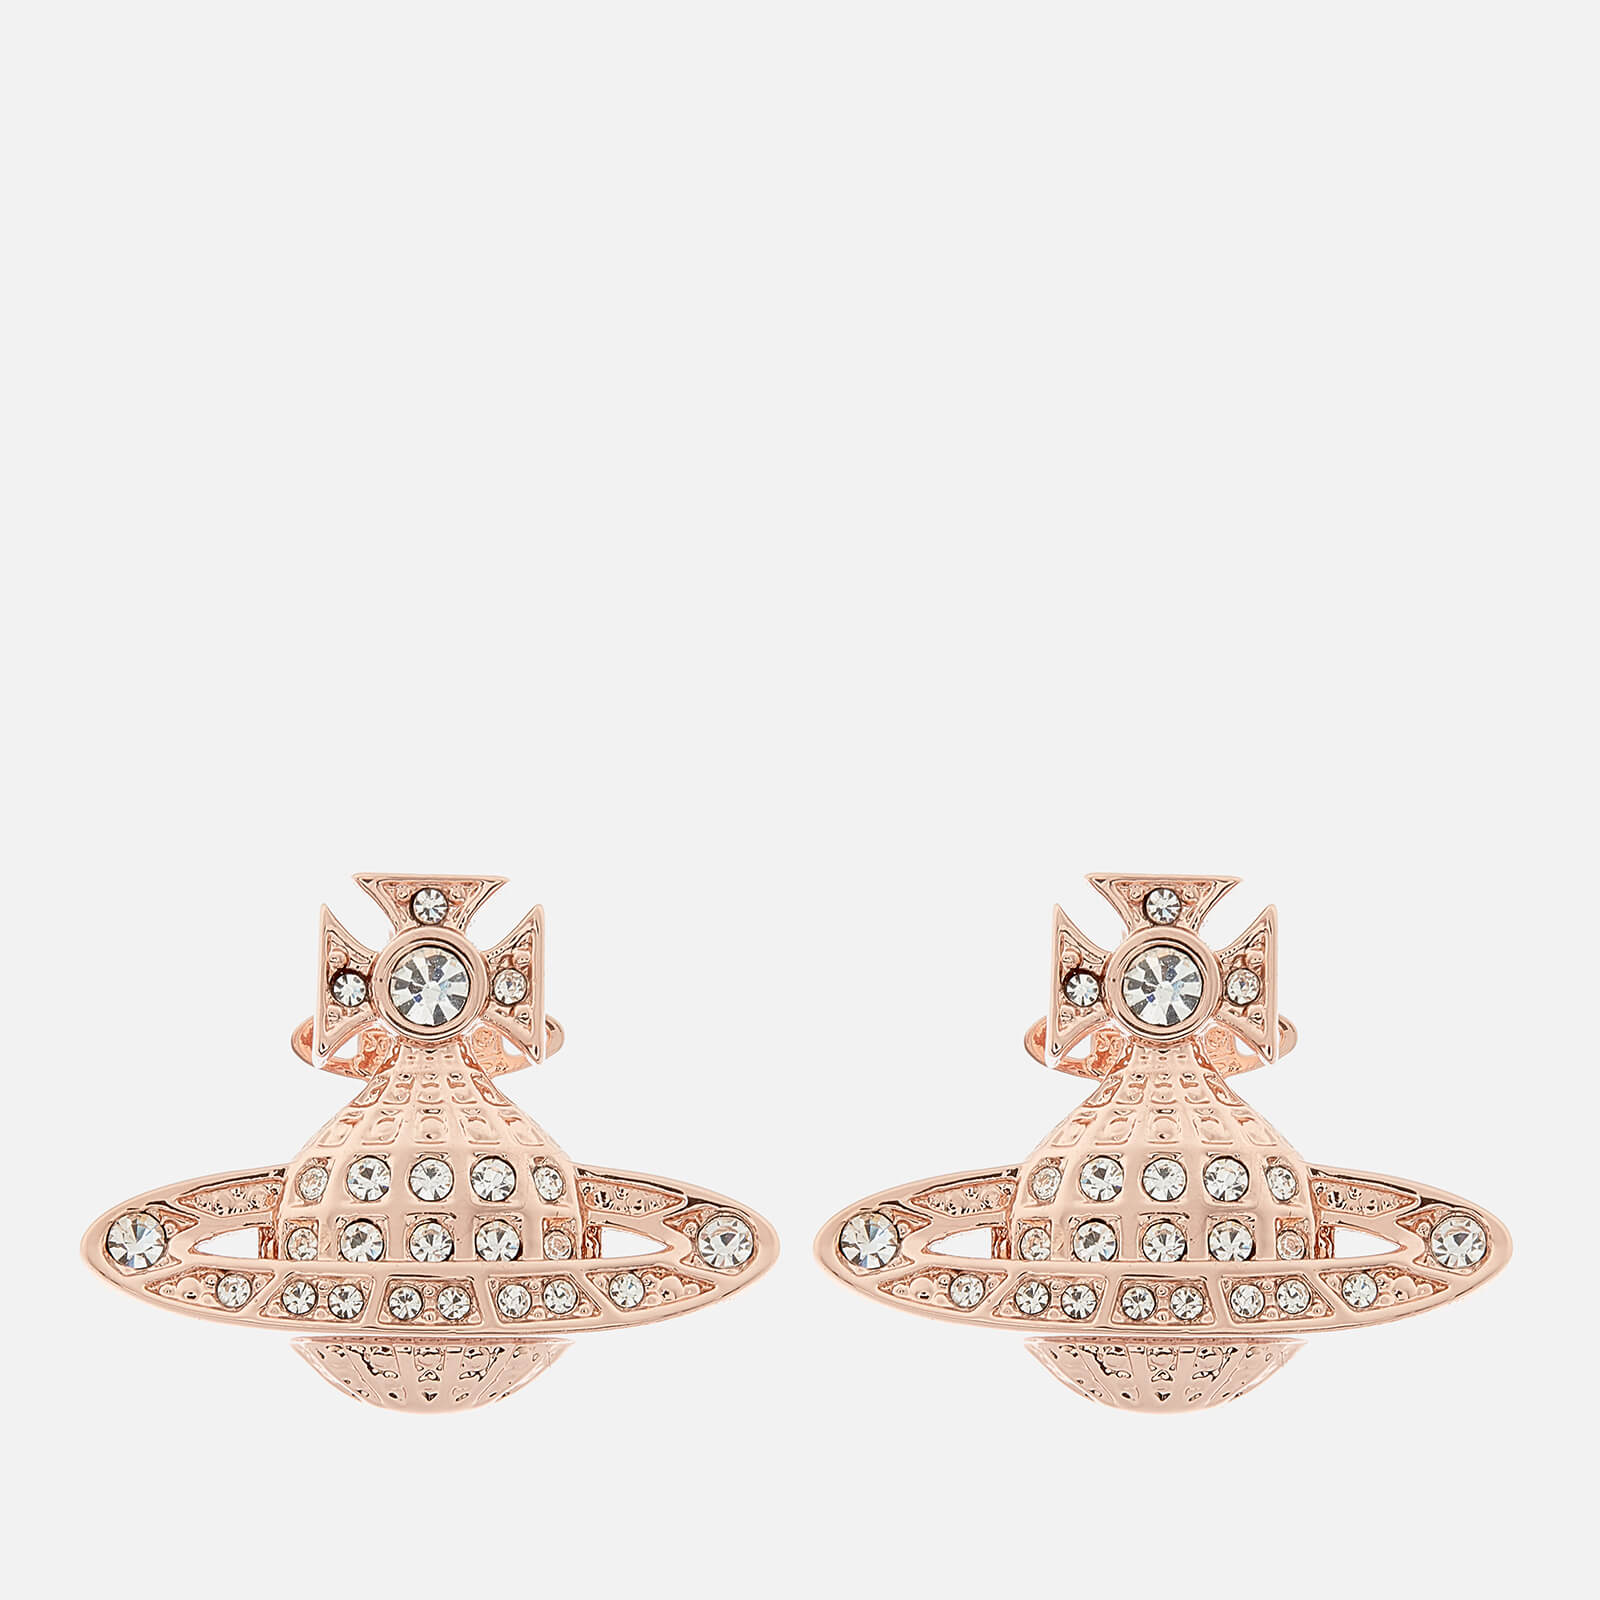 d2f8a522040 Vivienne Westwood Women's Mini Bas Relief Earrings - Pink Gold - Free UK  Delivery over £50